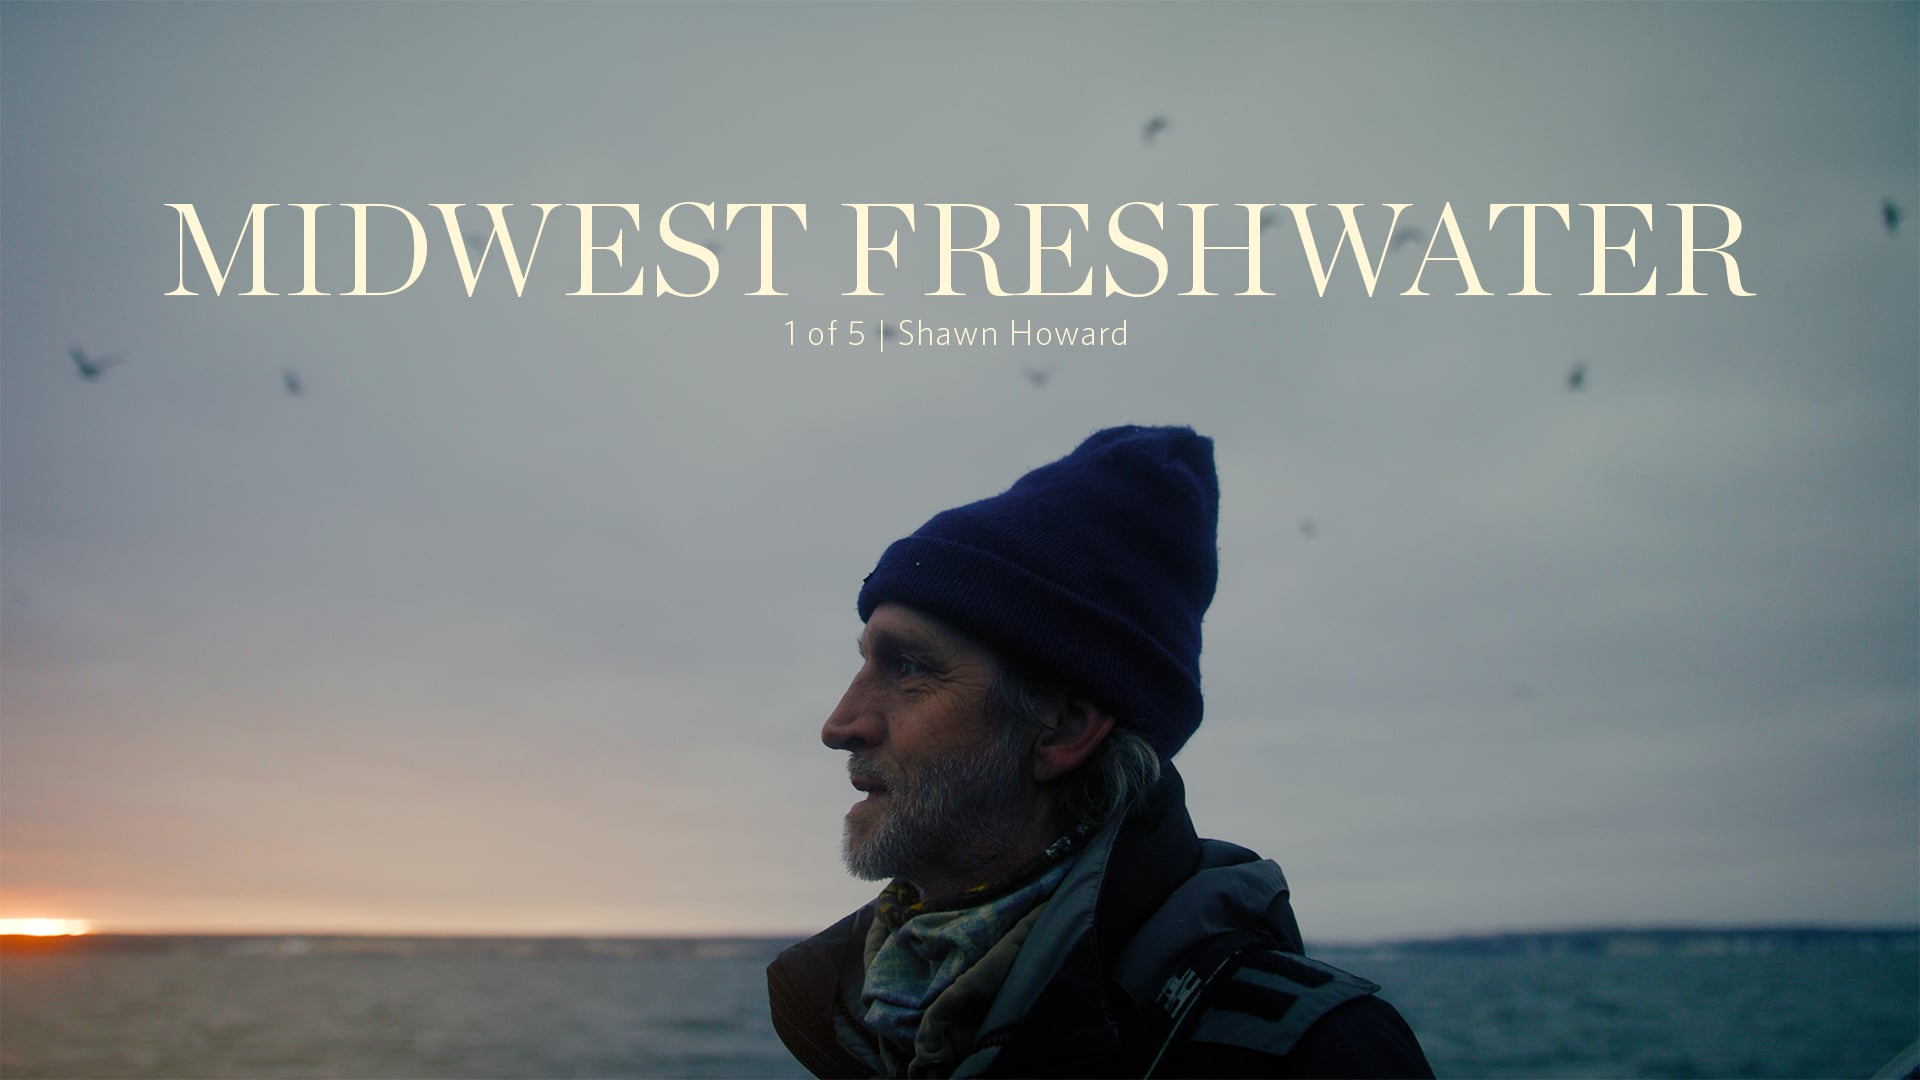 Midwest Freshwater | Shawn Howard